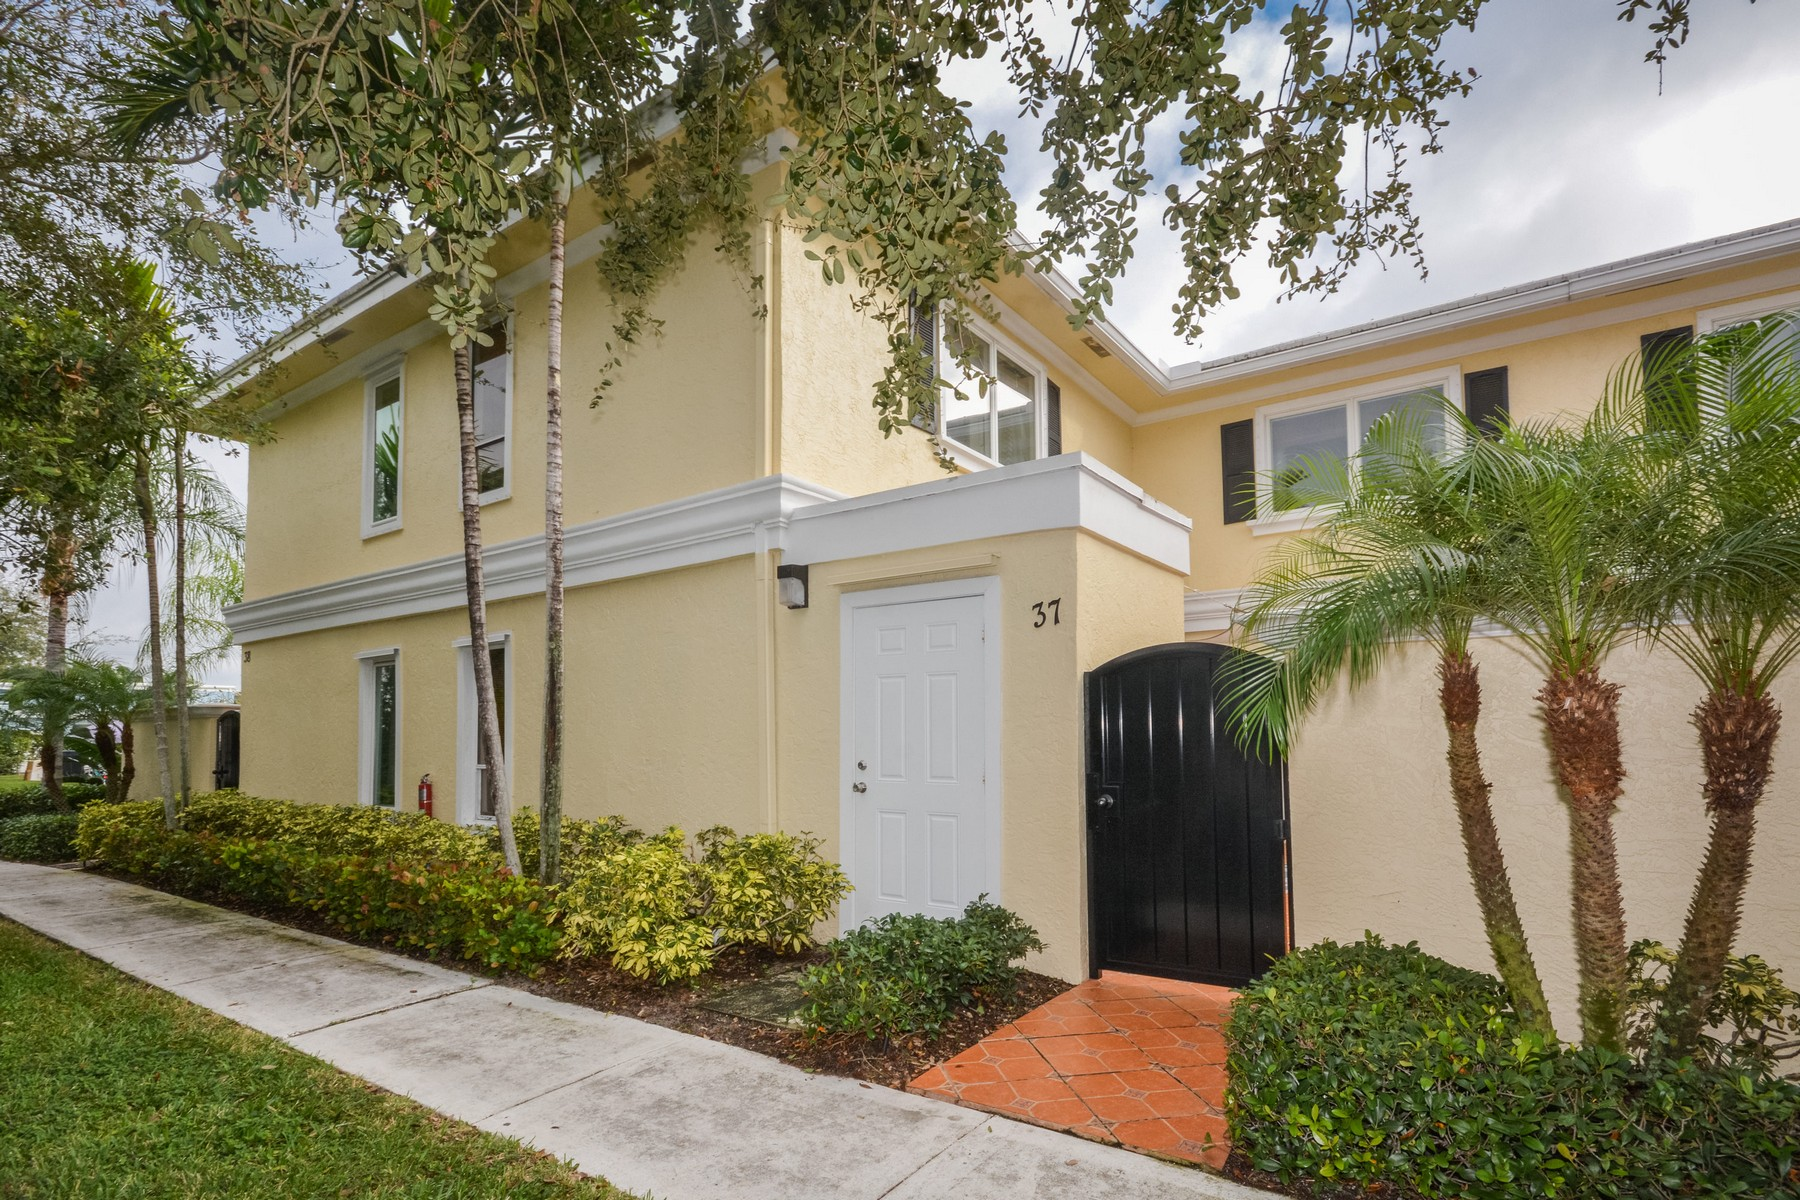 Townhouse for Sale at 1010 NE 8th Ave , 37-F, Delray Beach, FL 33483 1010 NE 8th Ave 37-F Delray Beach, Florida, 33483 United States